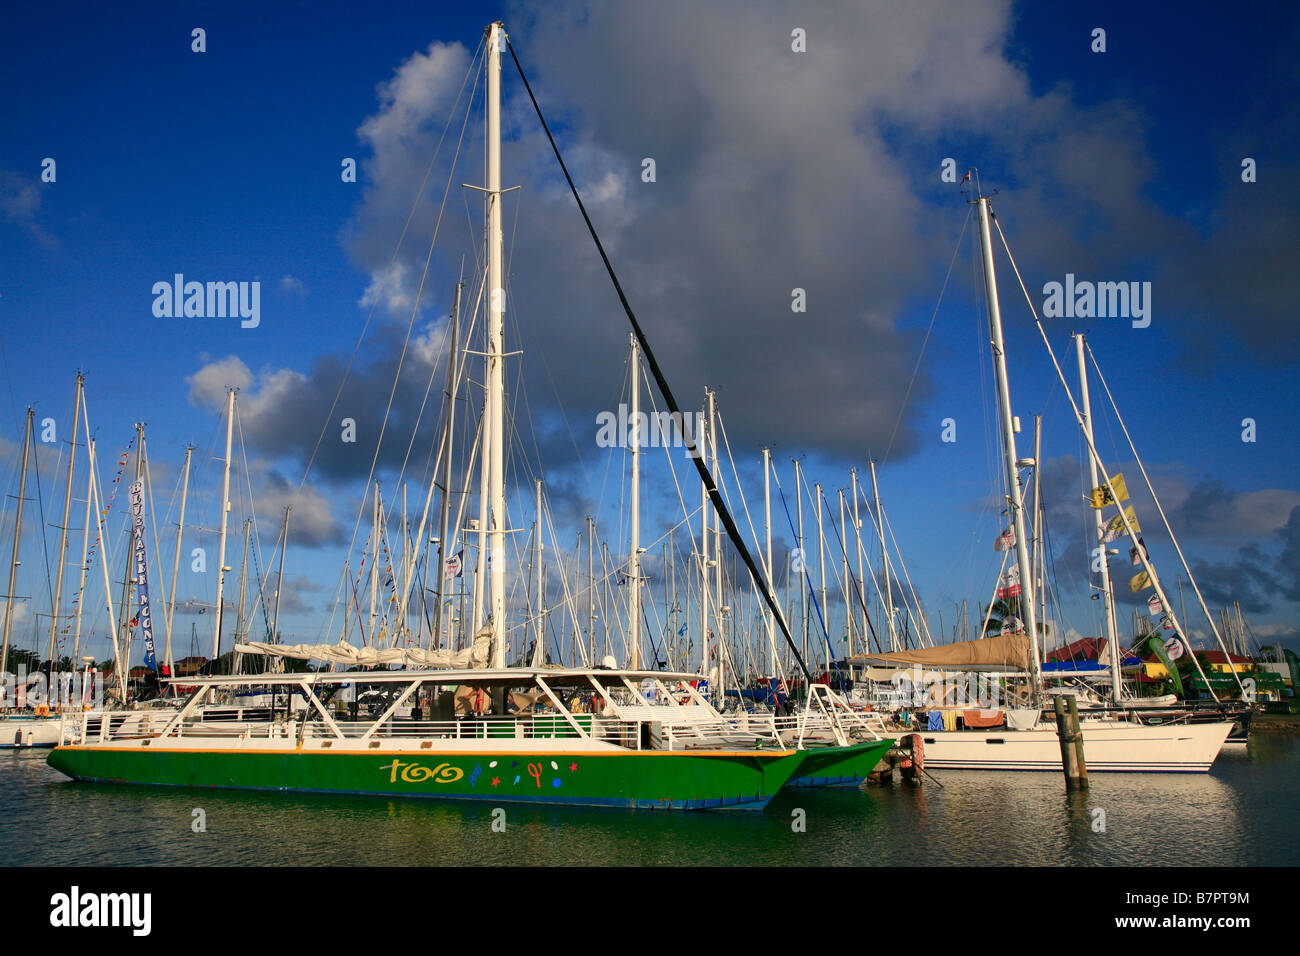 Boats, St Lucia - Stock Image